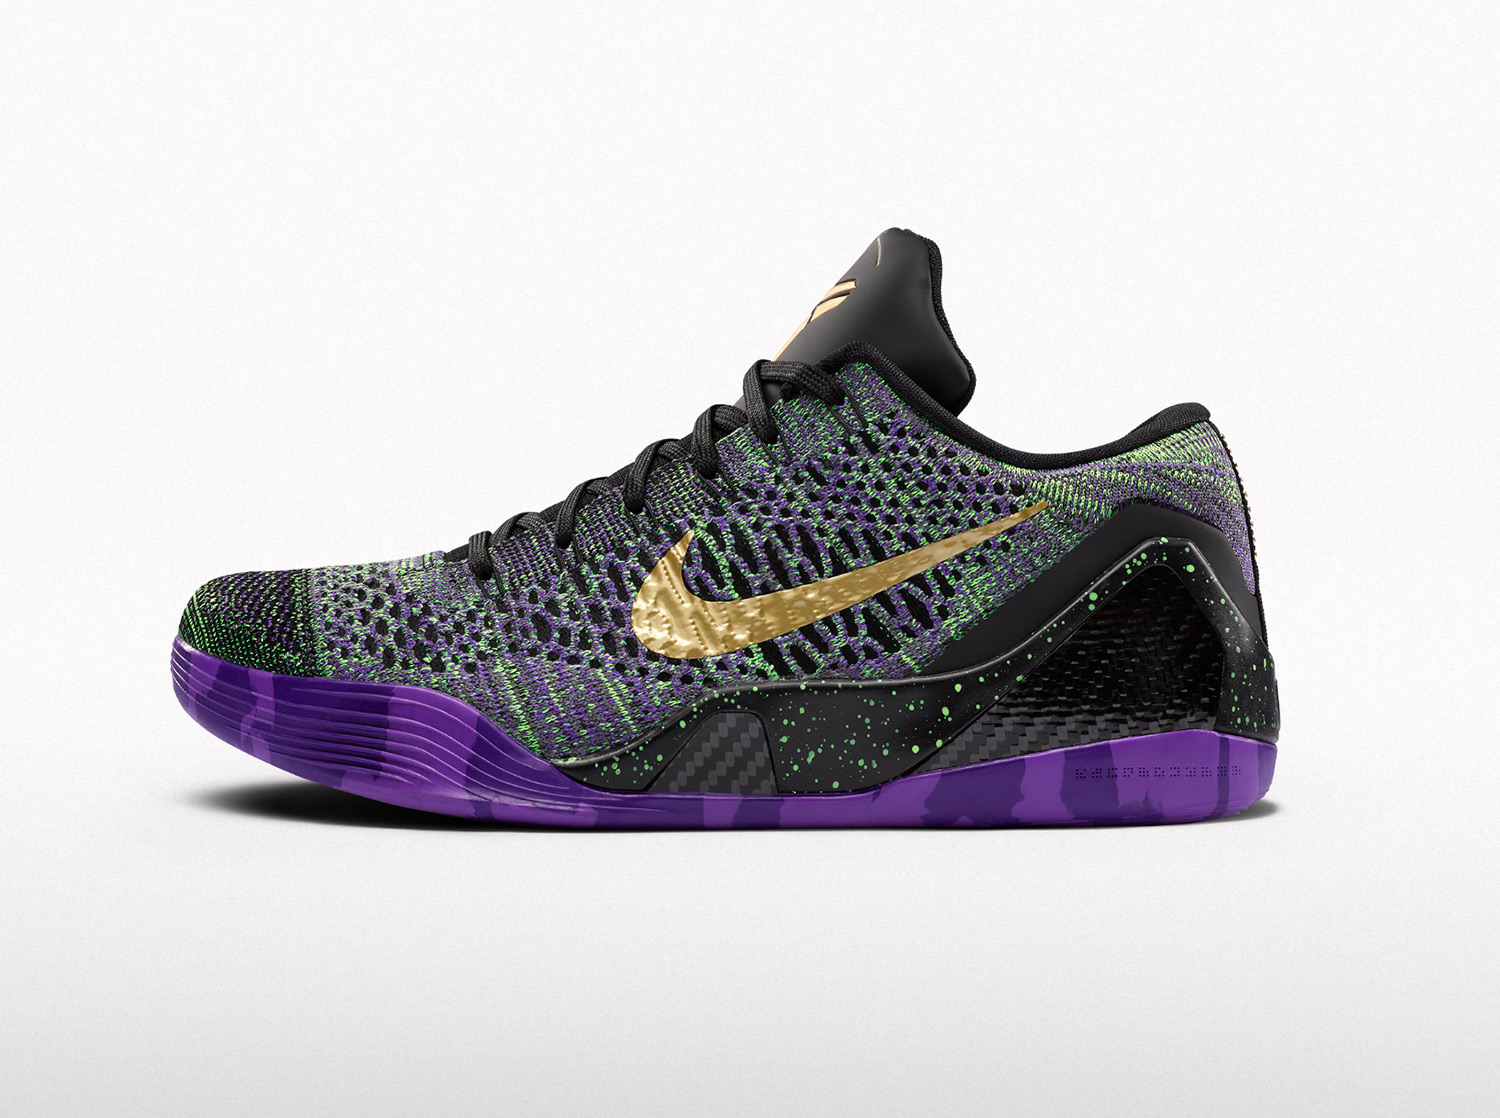 Nike iD Kobe 9 Elite Low Mamba Moment